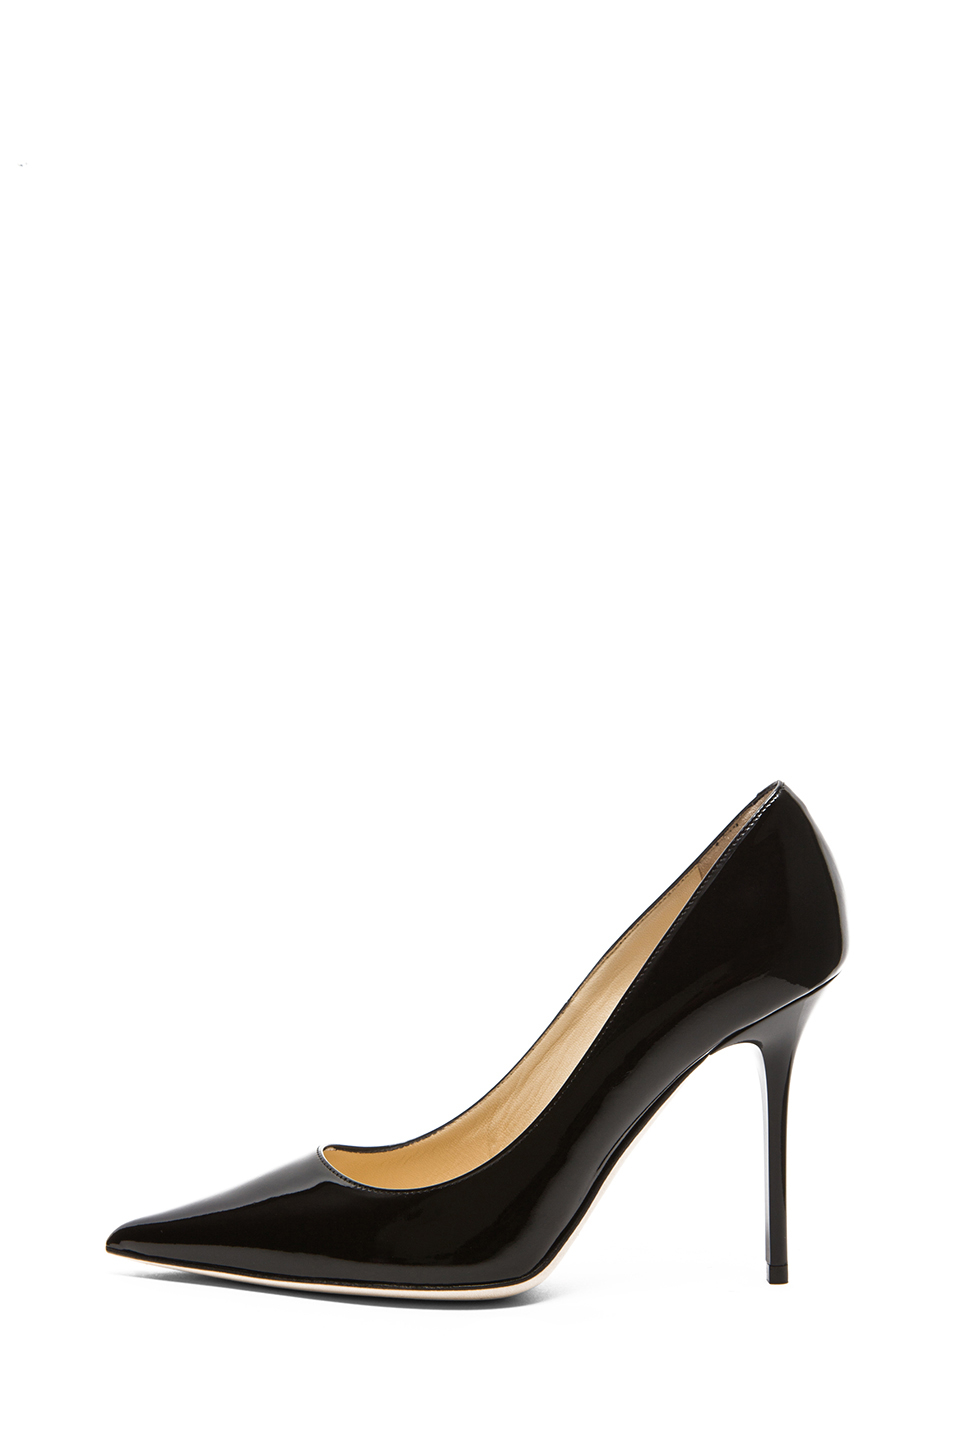 Jimmy Choo|Abel Patent Leather Pumps in Black